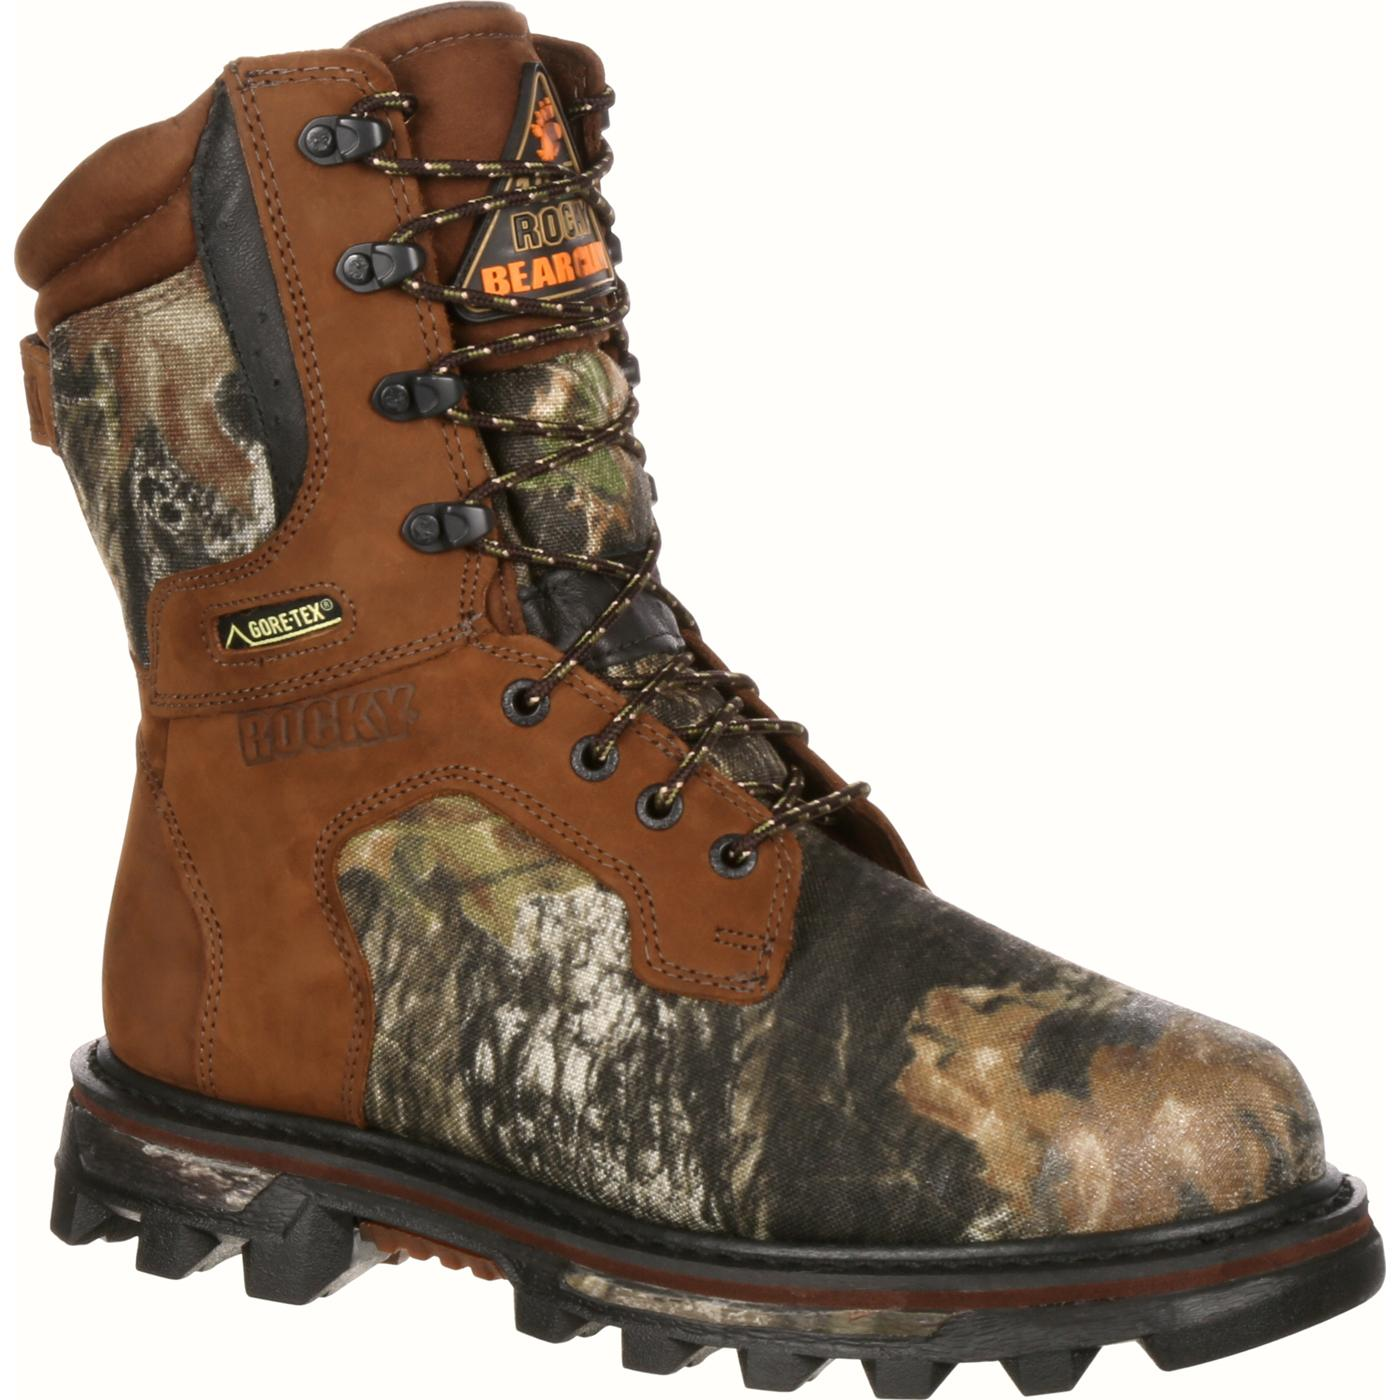 Rocky Bearclaw 3d Insulated Gore Tex Hunting Boot 9275